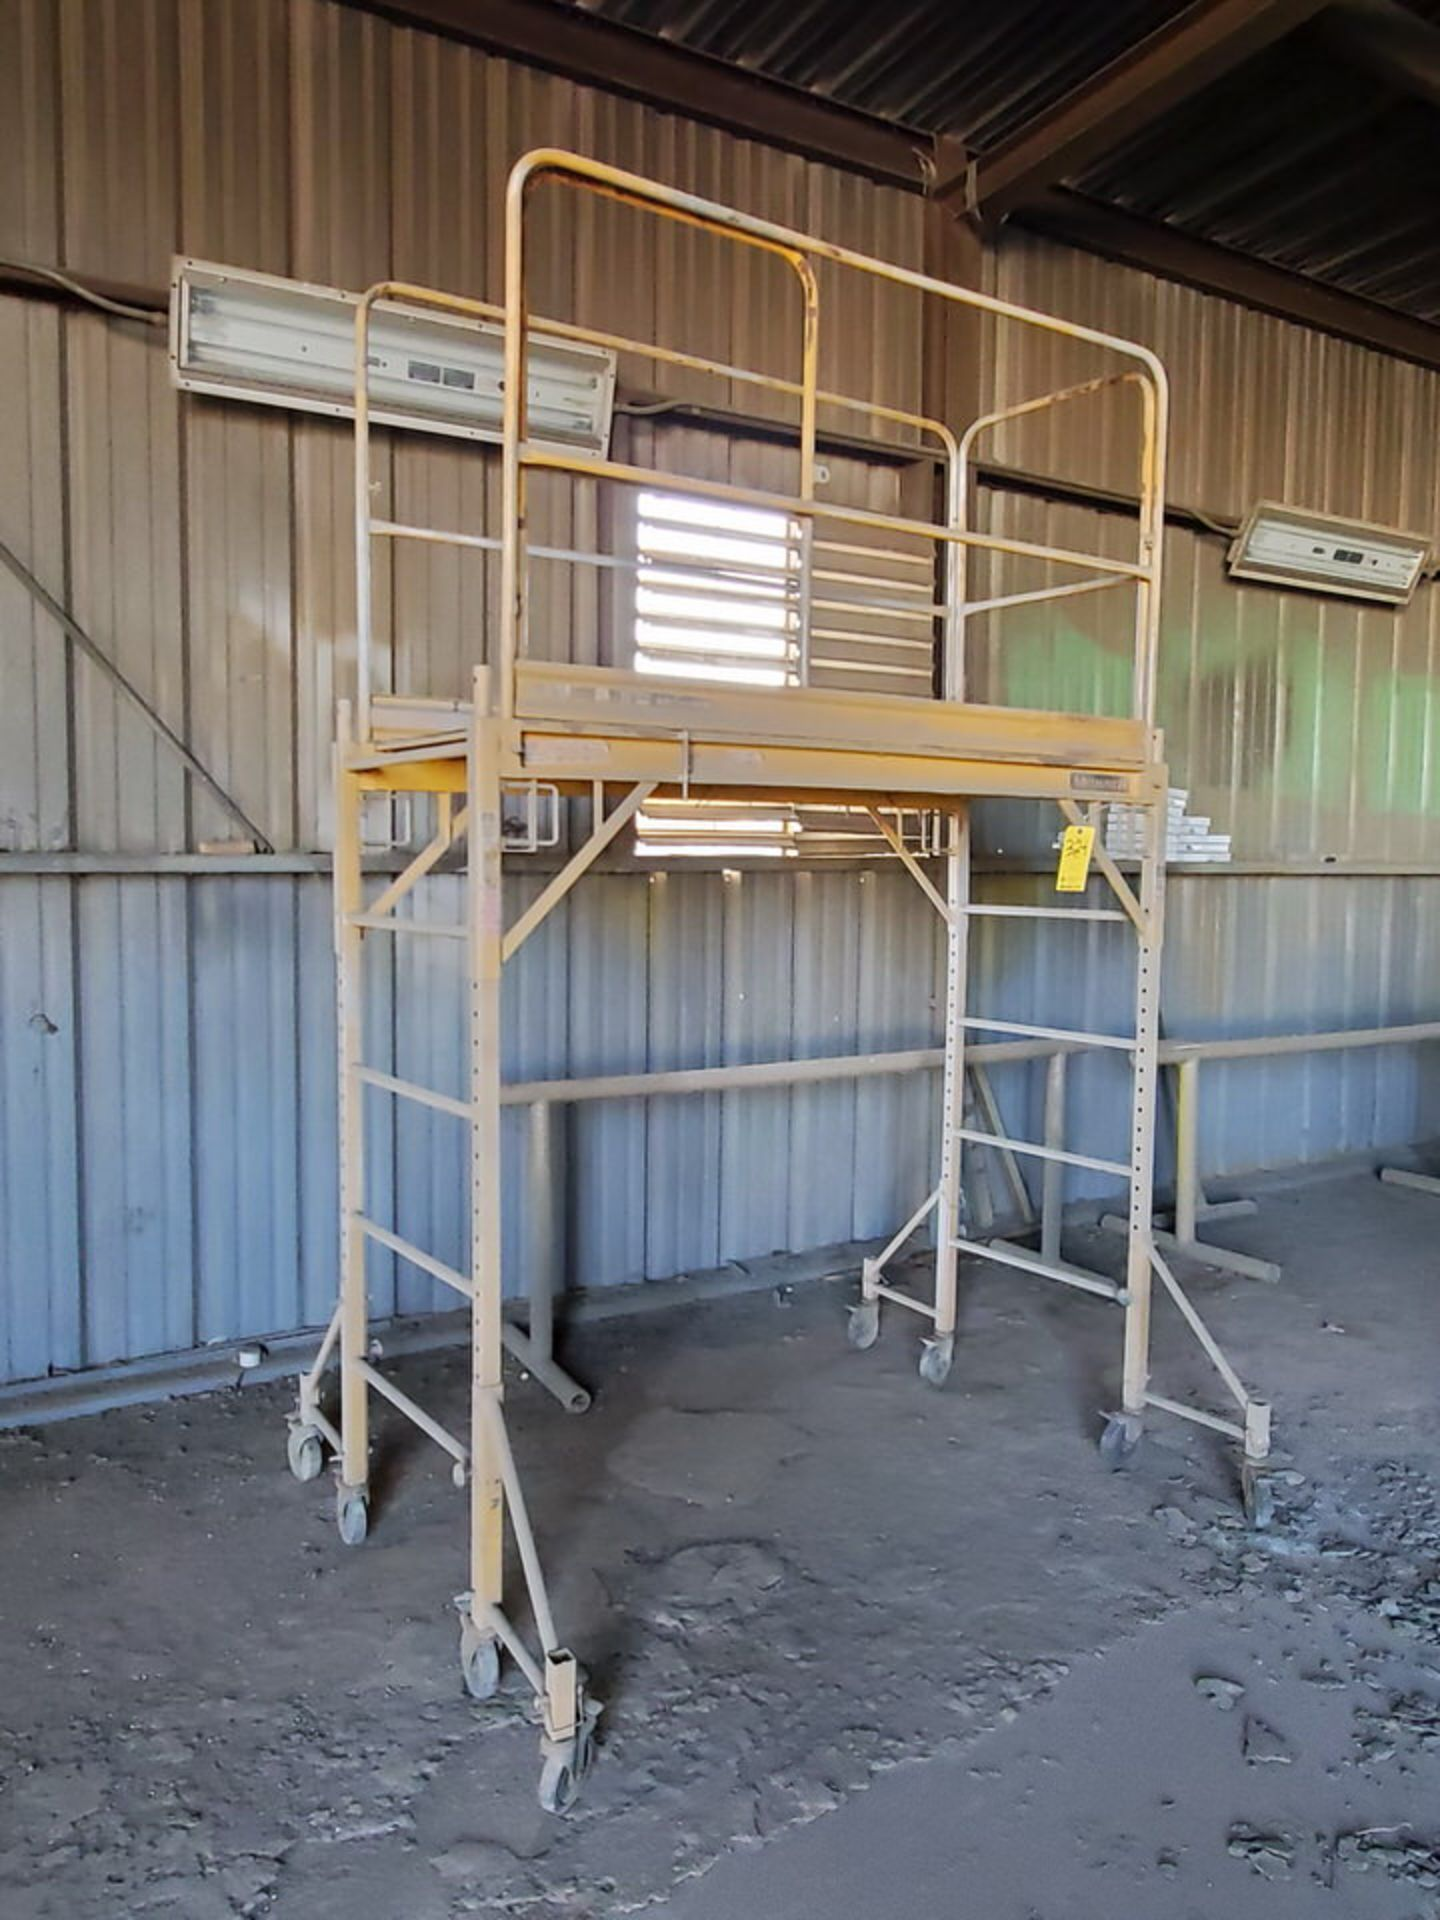 Scaffolds - Image 2 of 5